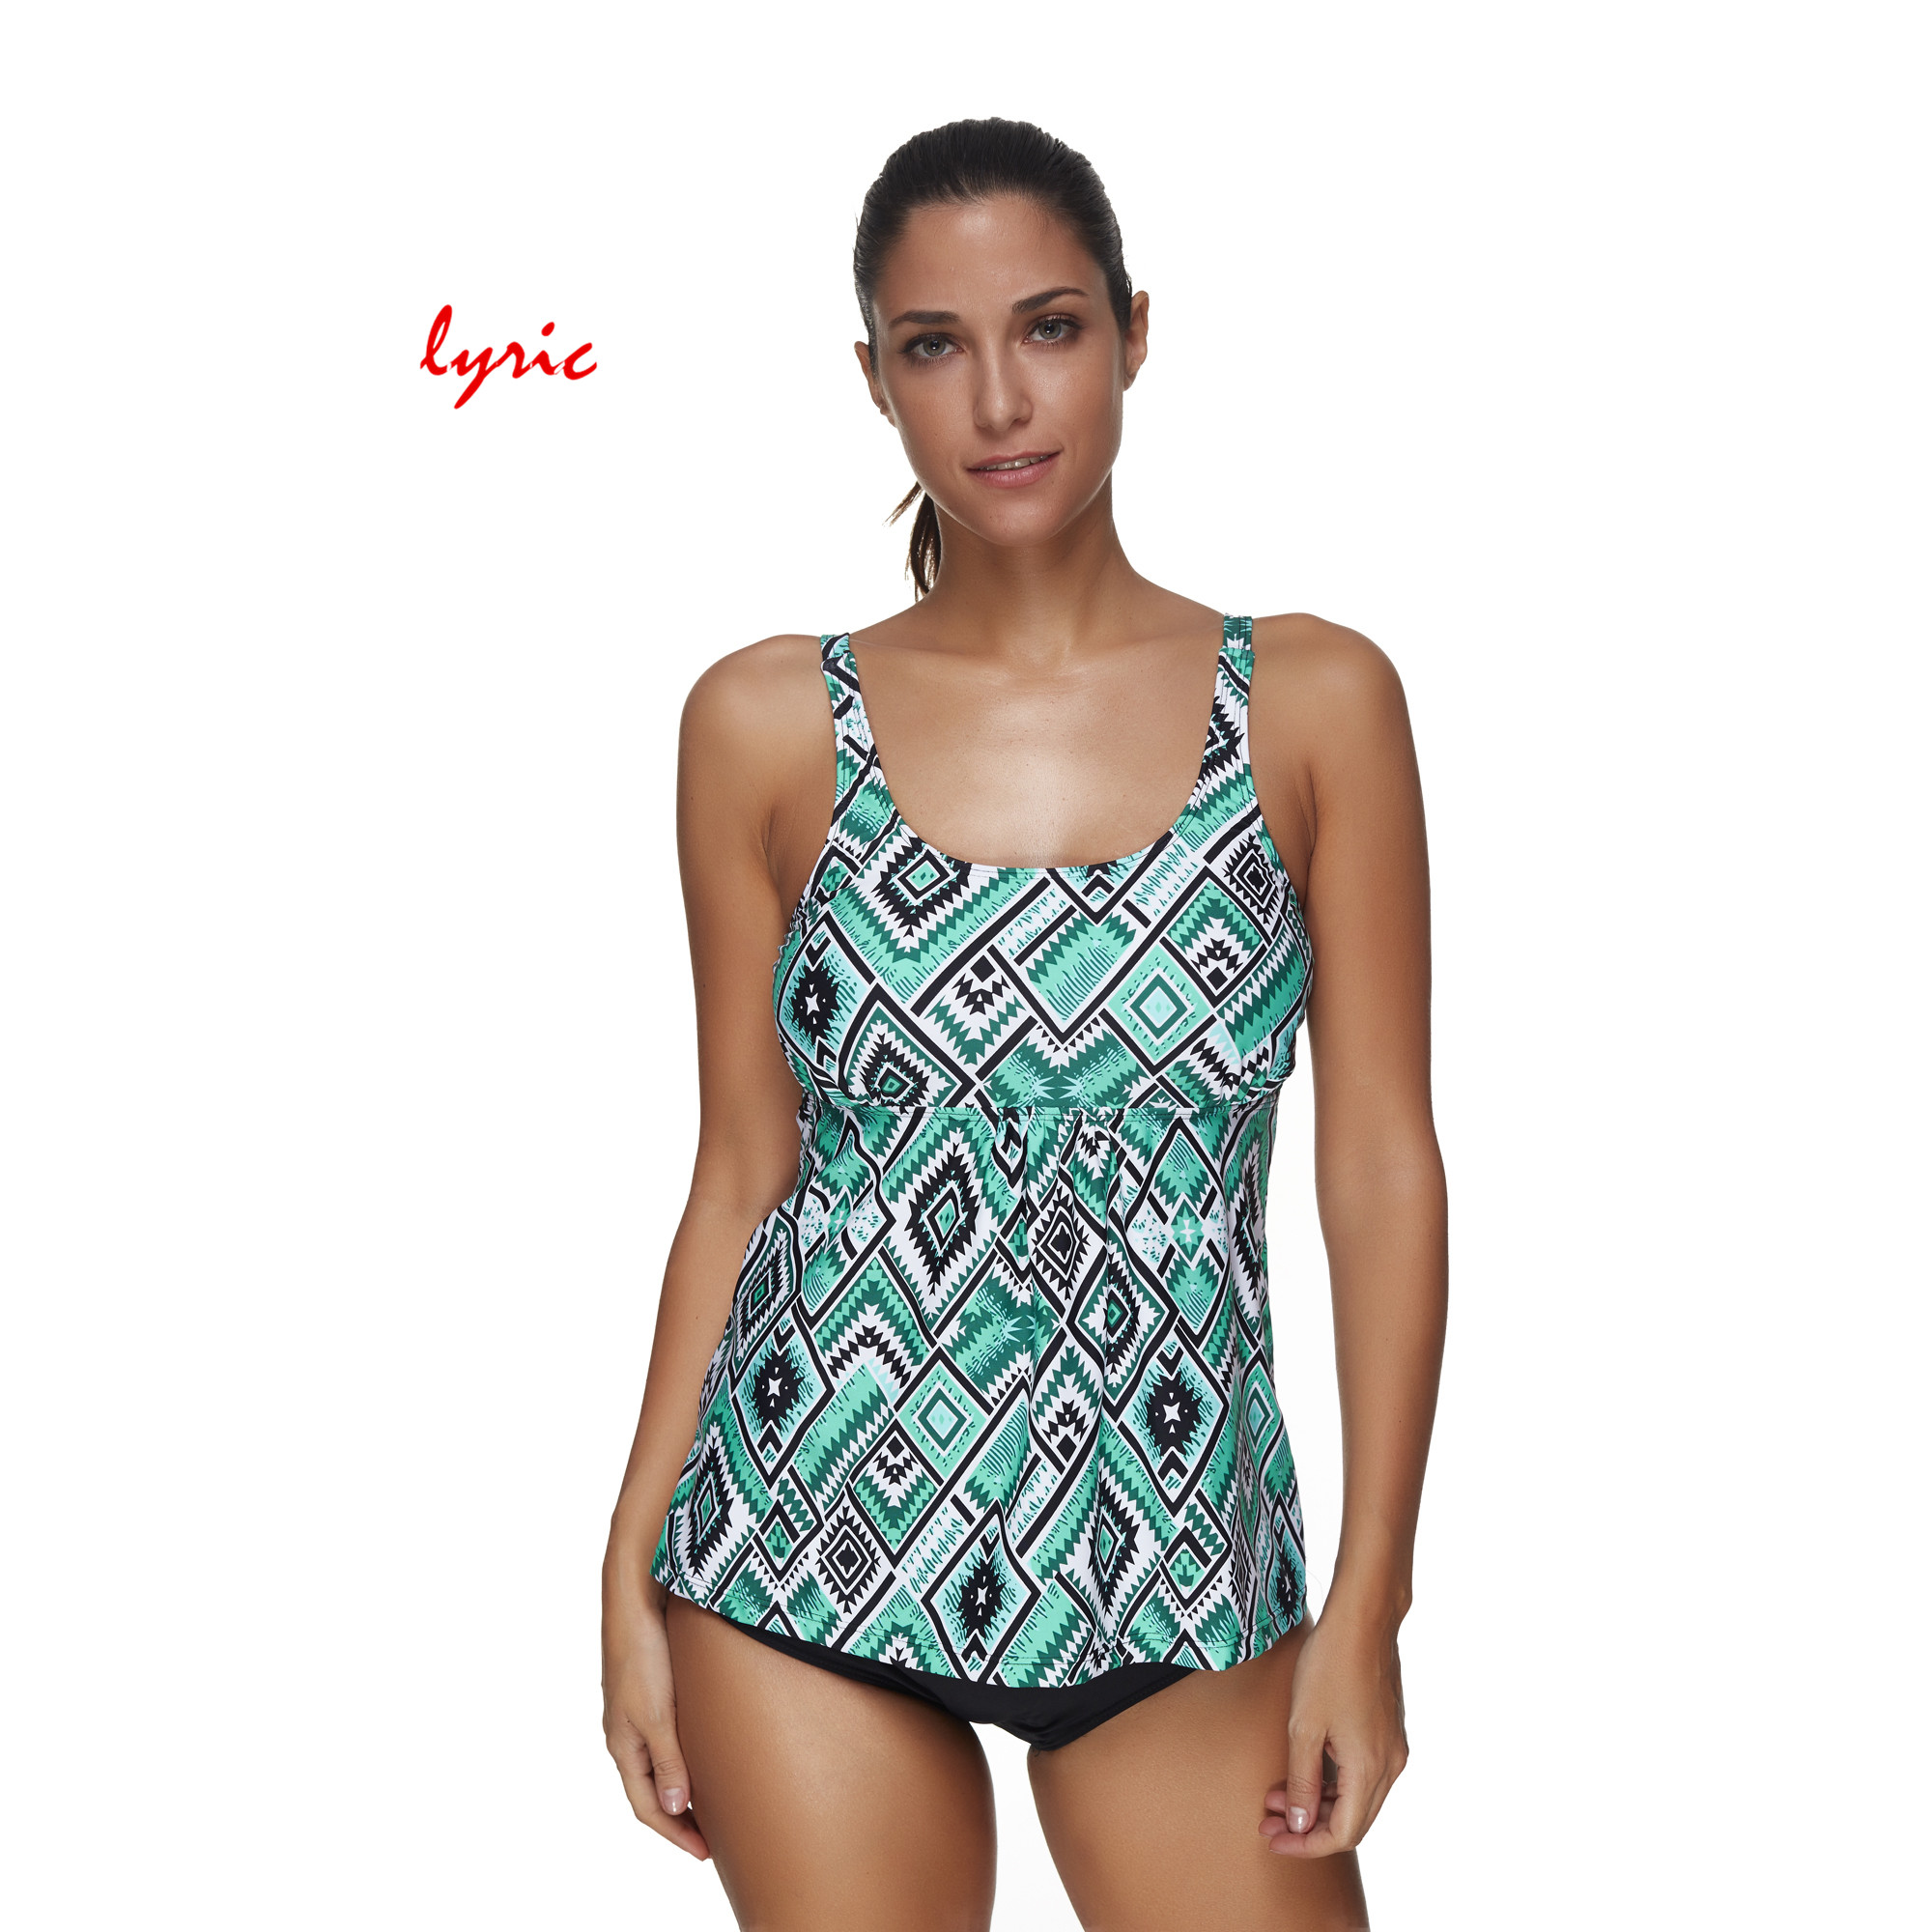 081152876177f lyric Blue Print 2 Pcs Bikini Set Swimsuit For Women Swimming Suit Plus  Size Swimwear Bathing Suit Strappy Cover Ups Costume-in Body Suits from  Sports ...